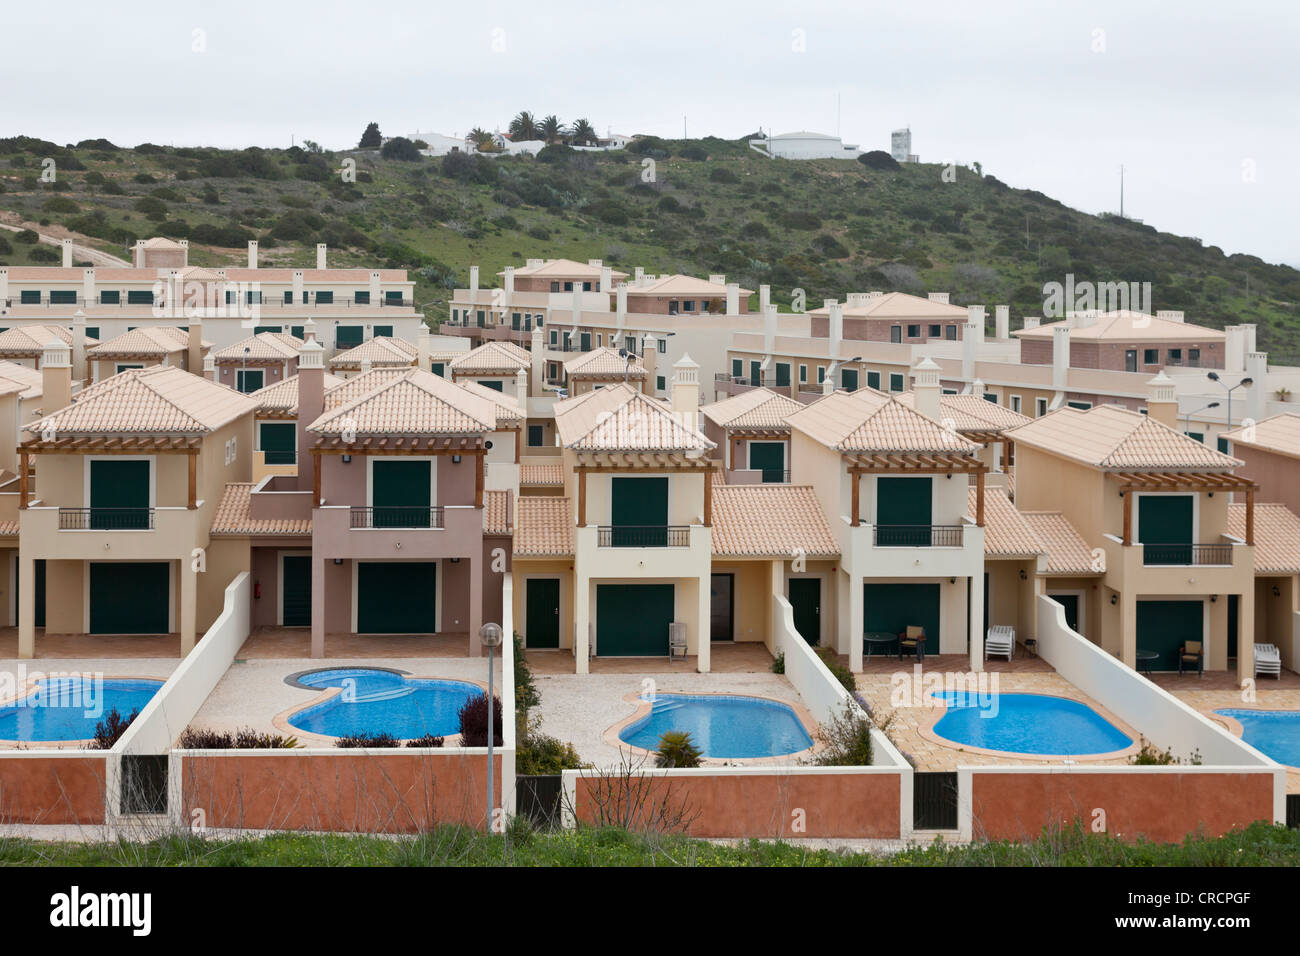 Monotone, uninhabited cottages, town houses with pools, Algarve, Portugal, Europe - Stock Image